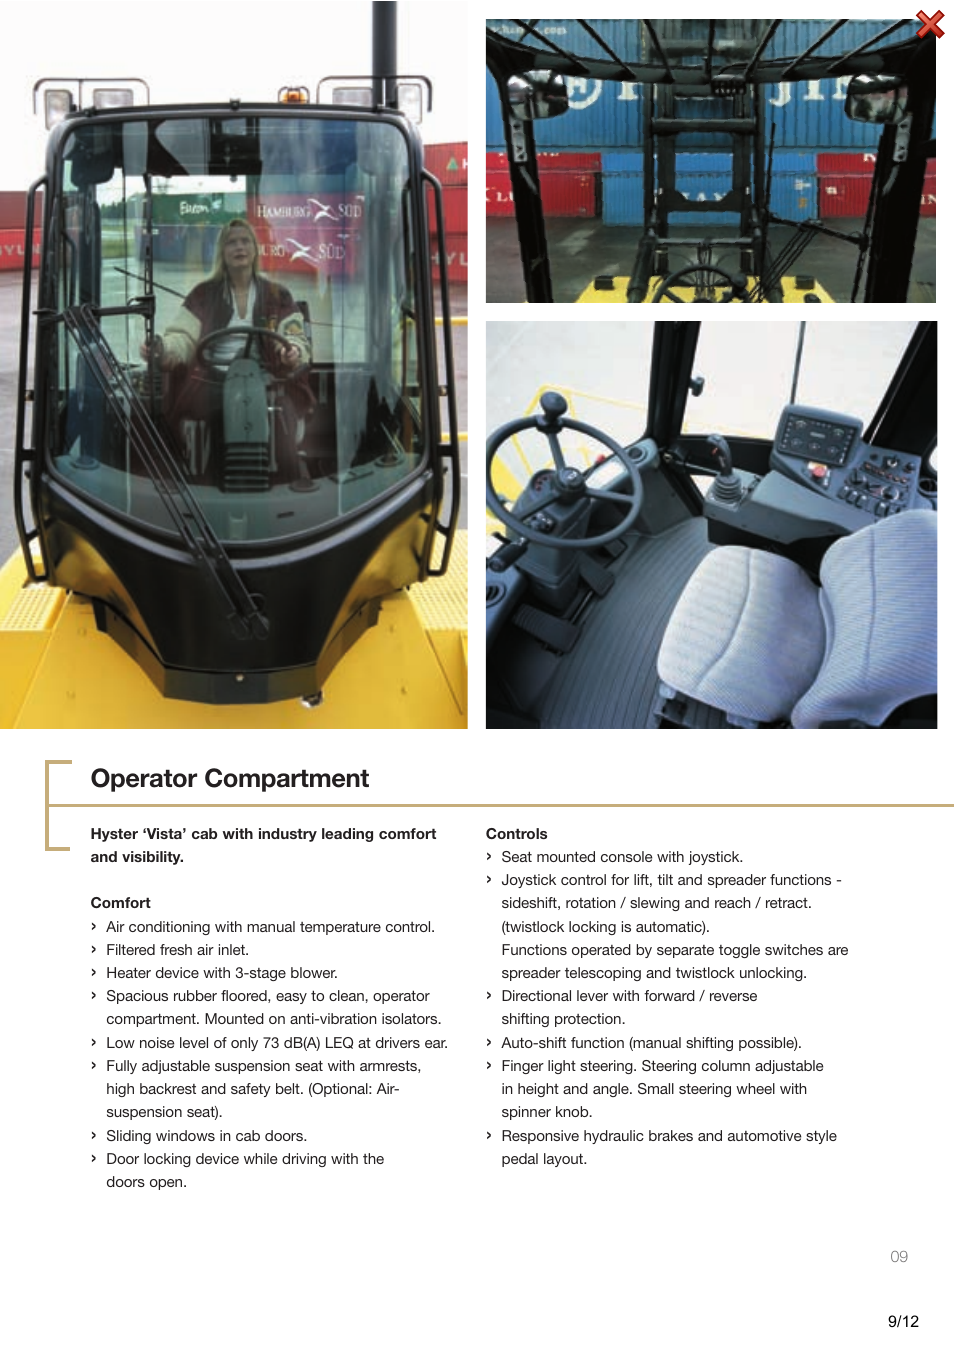 Operator compartment | Hyster H40.00-50.00XM-16CH User Manual | Page